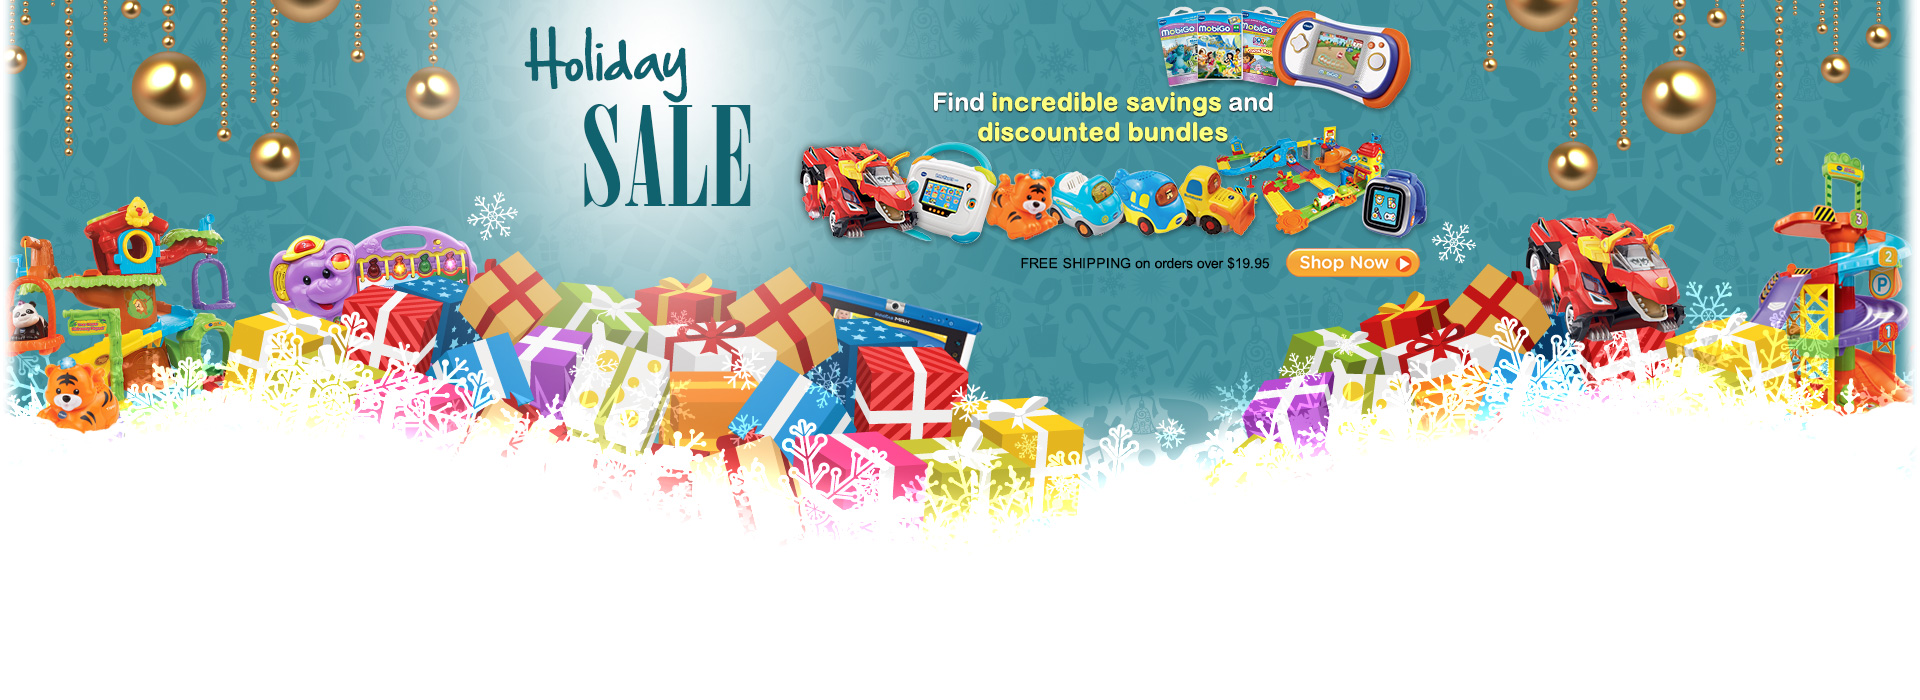 Thanksgiving Sale - Find incredible savings and discounted bundles here!